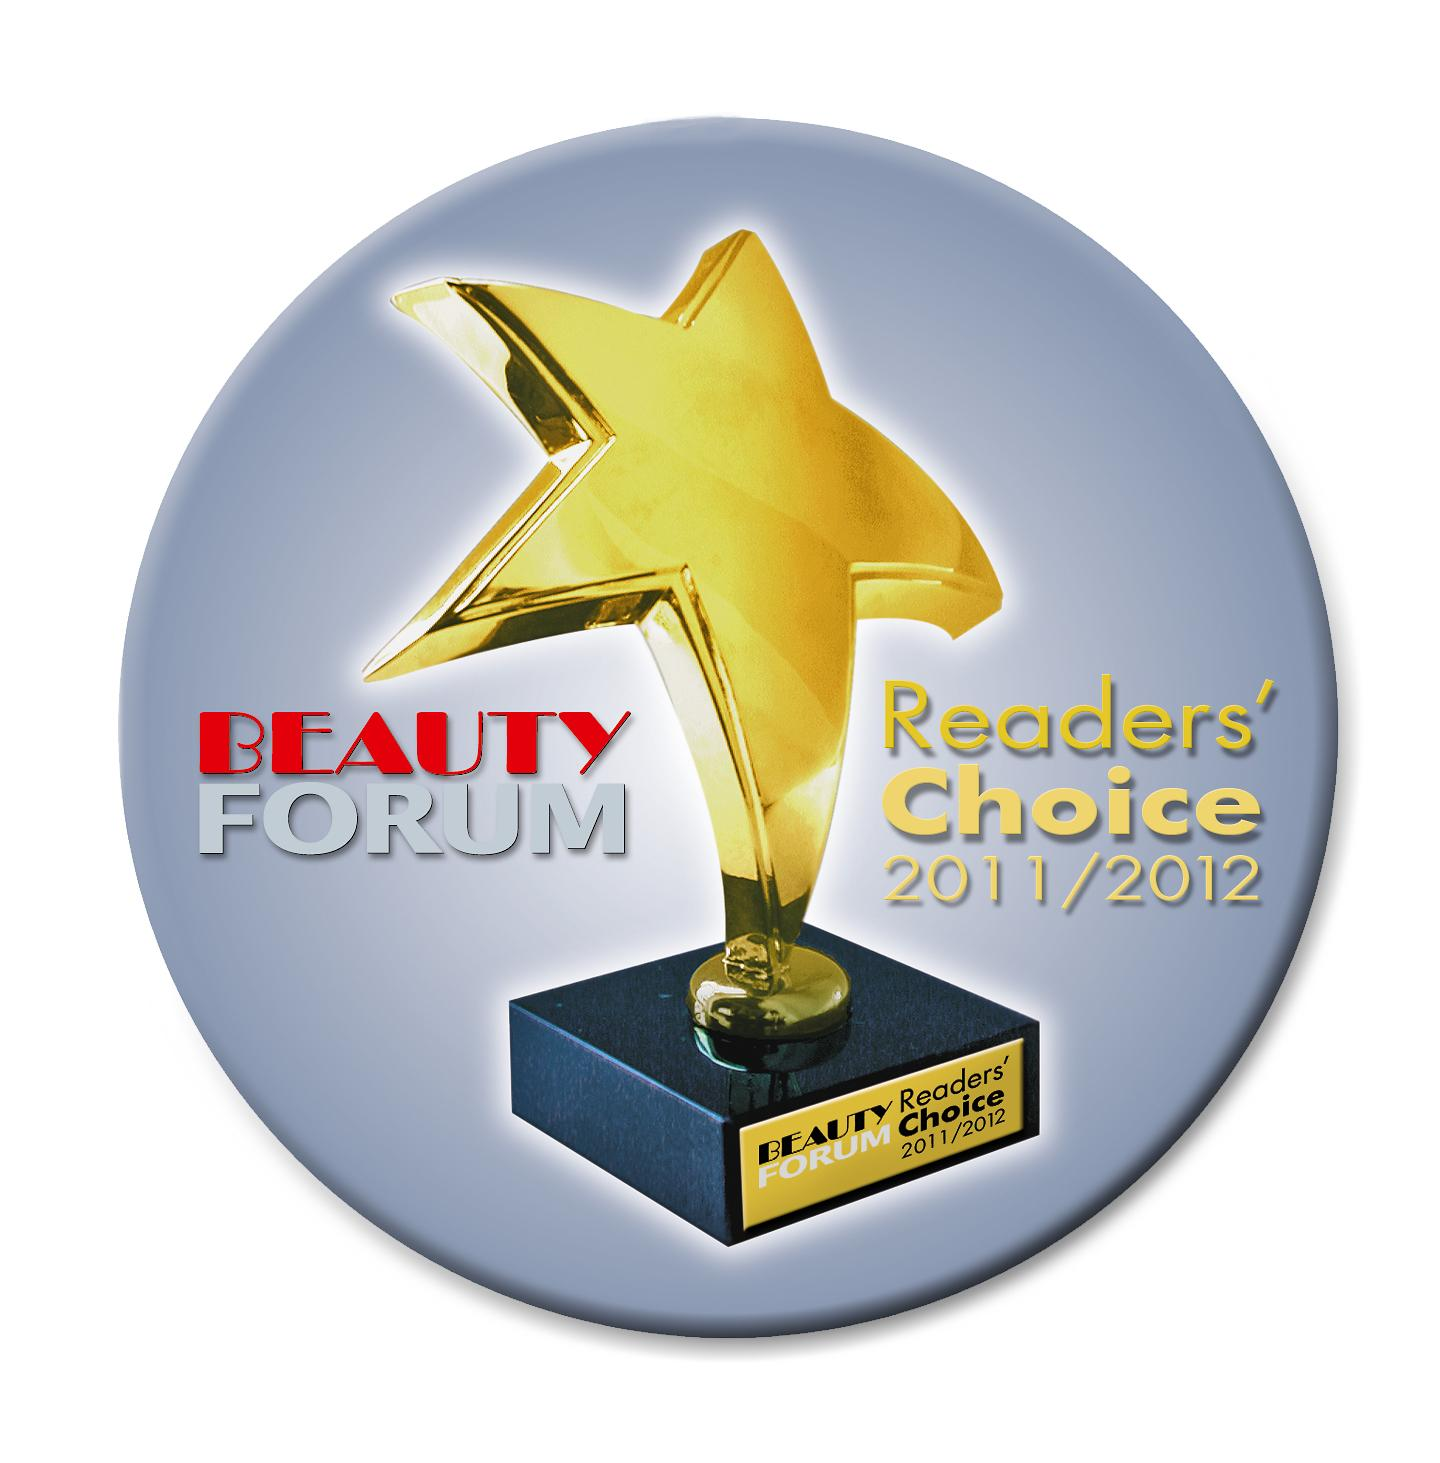 BEAUTY FORUM Reader's Choice Award 2011 2012